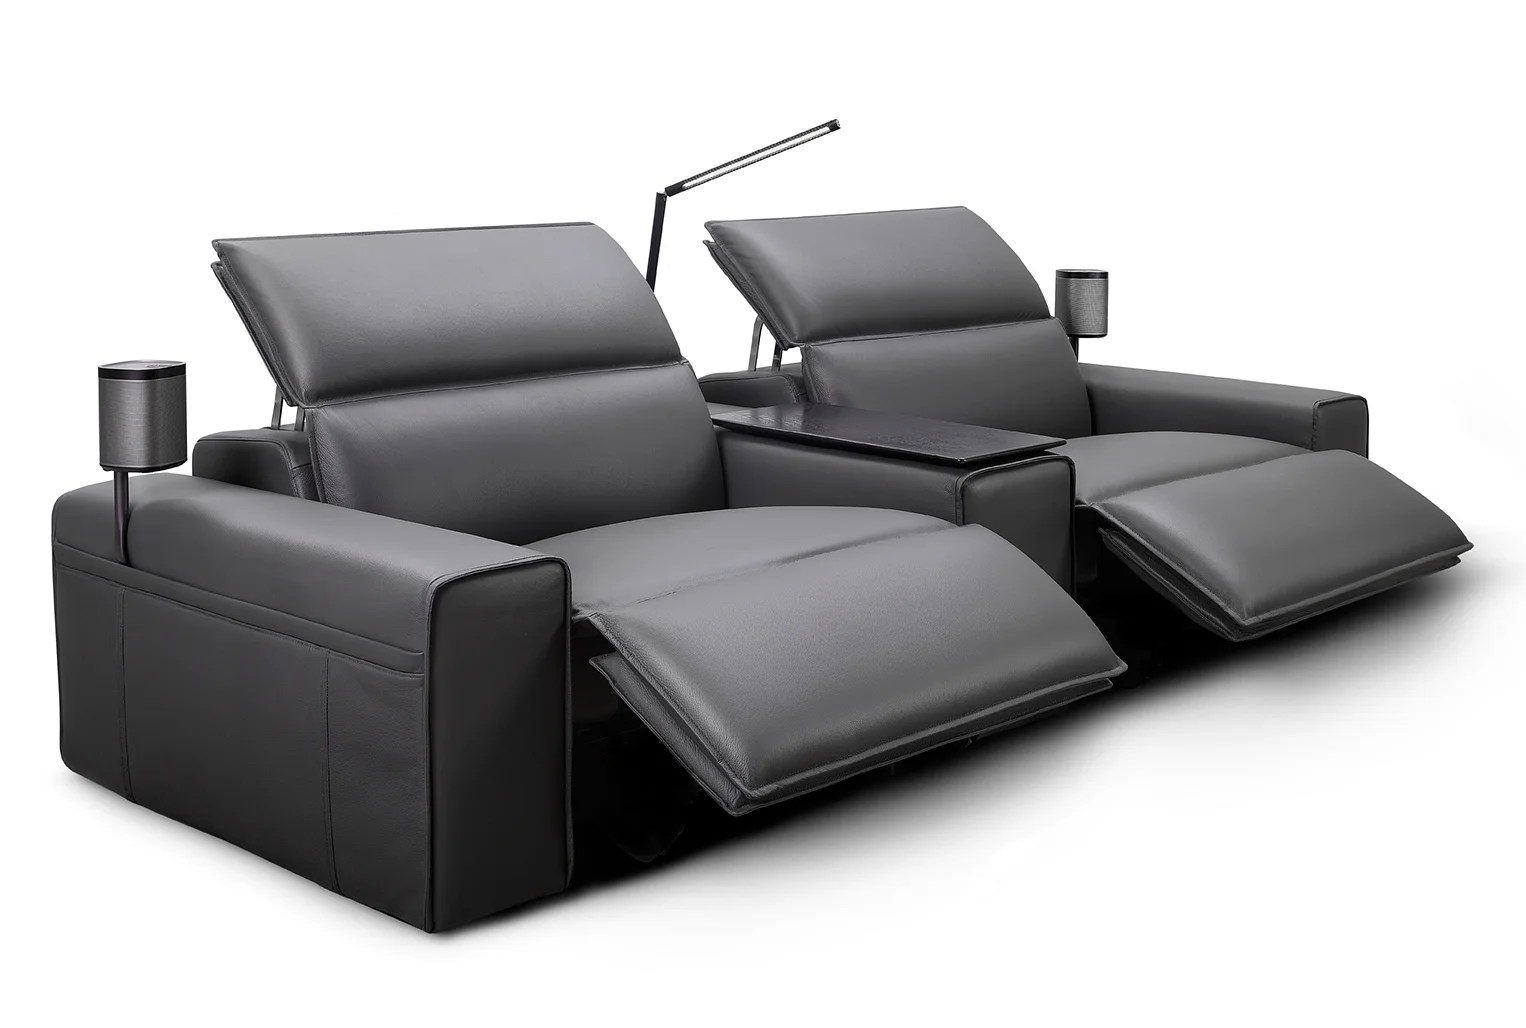 electric recliner sofa singapore small scale apartment 2 seater | www.energywarden.net